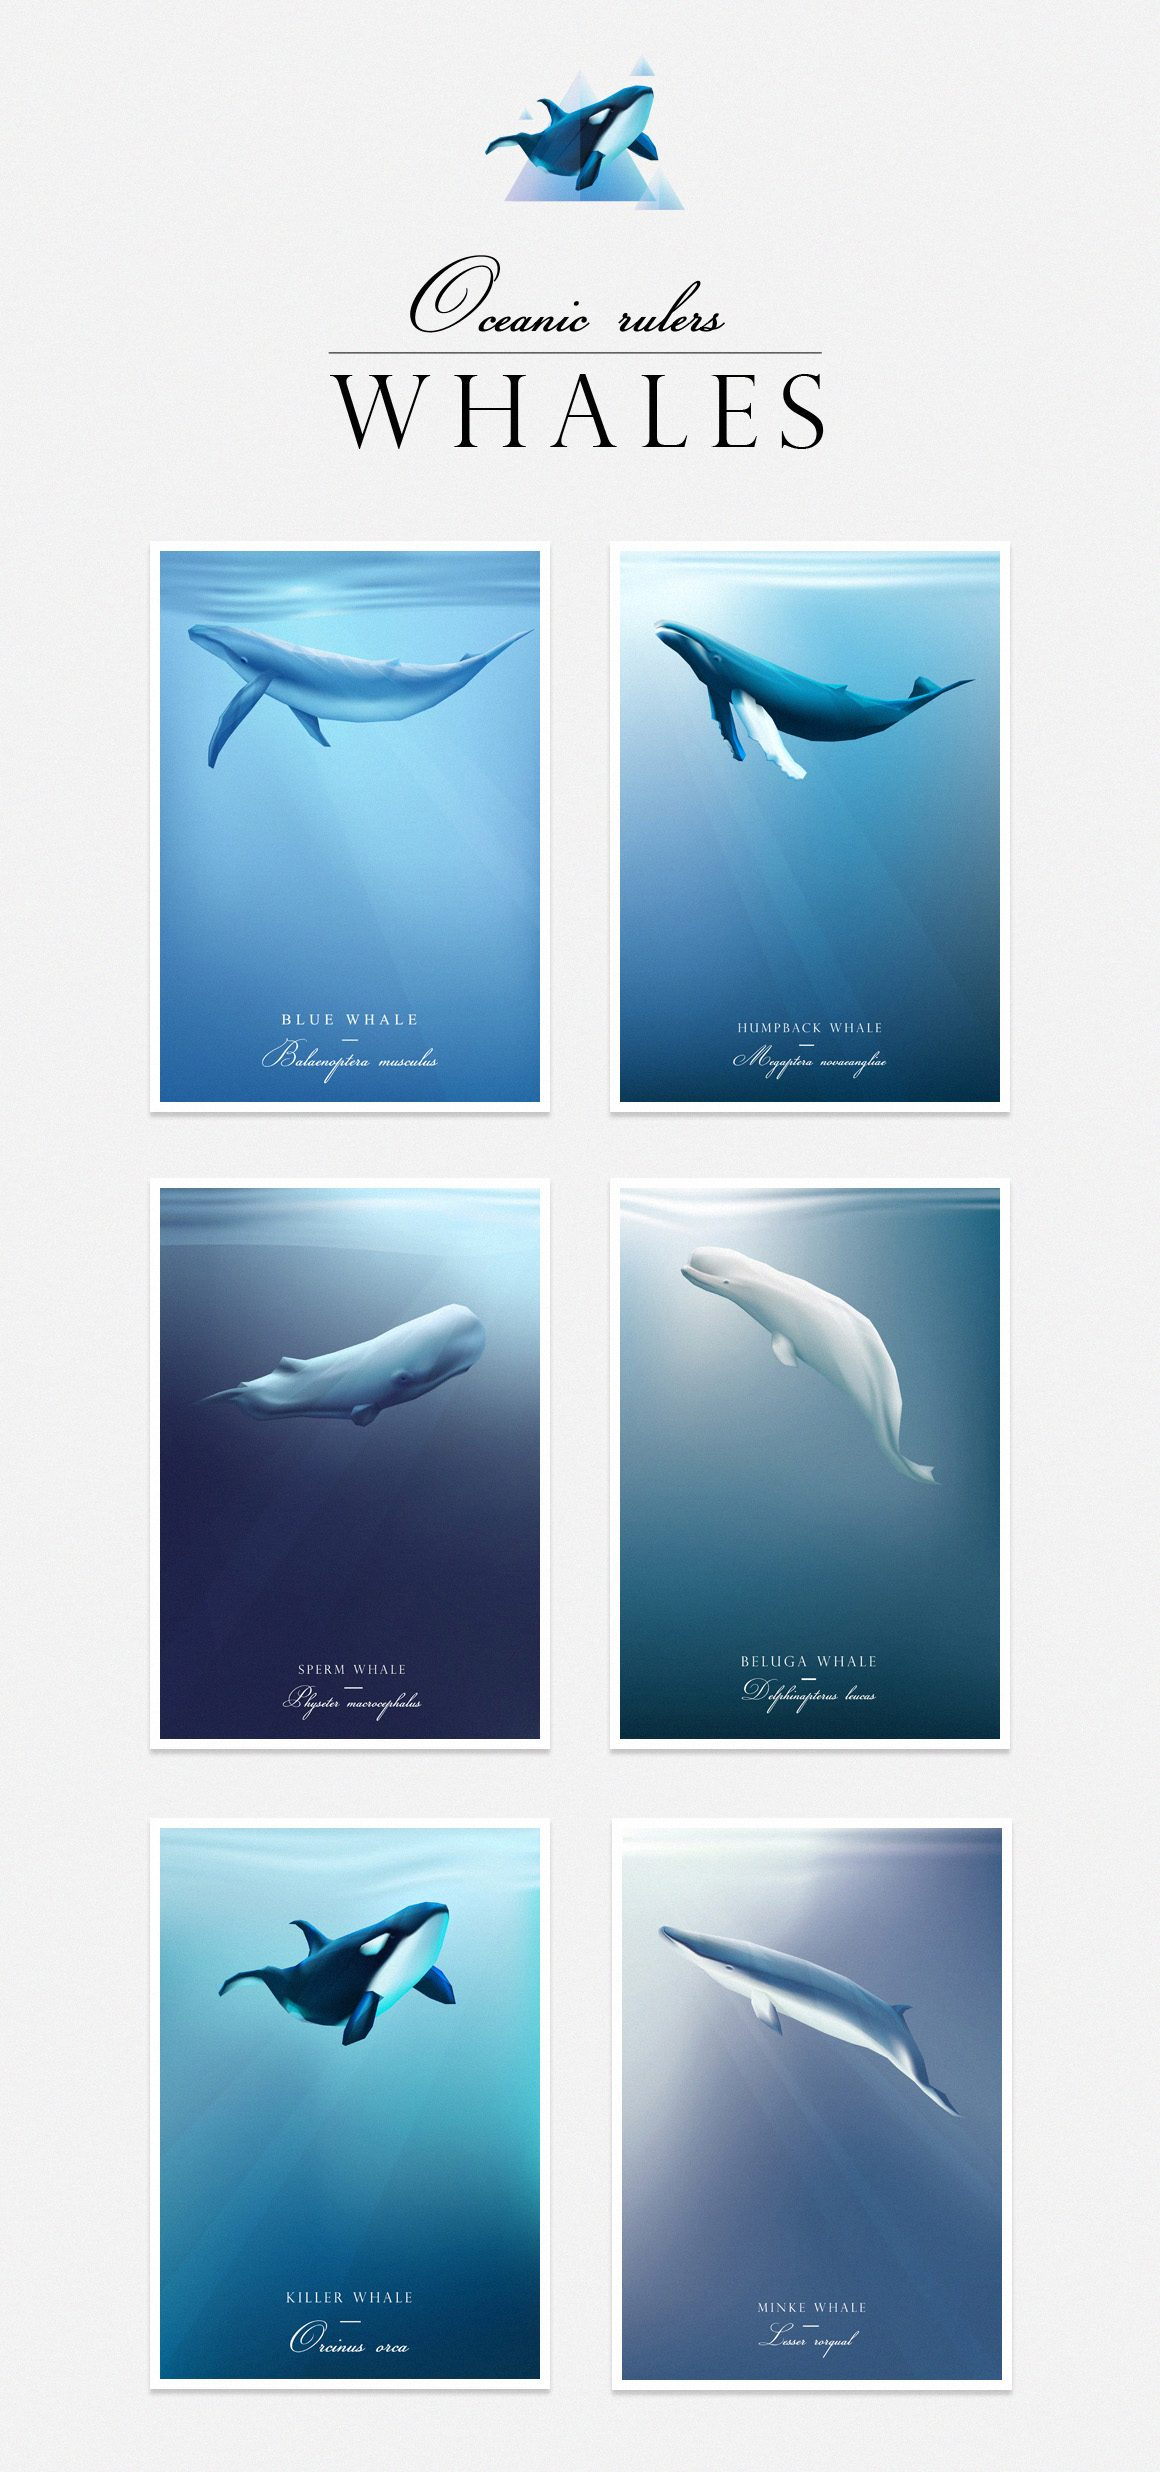 Oceanic Rulers-Whales